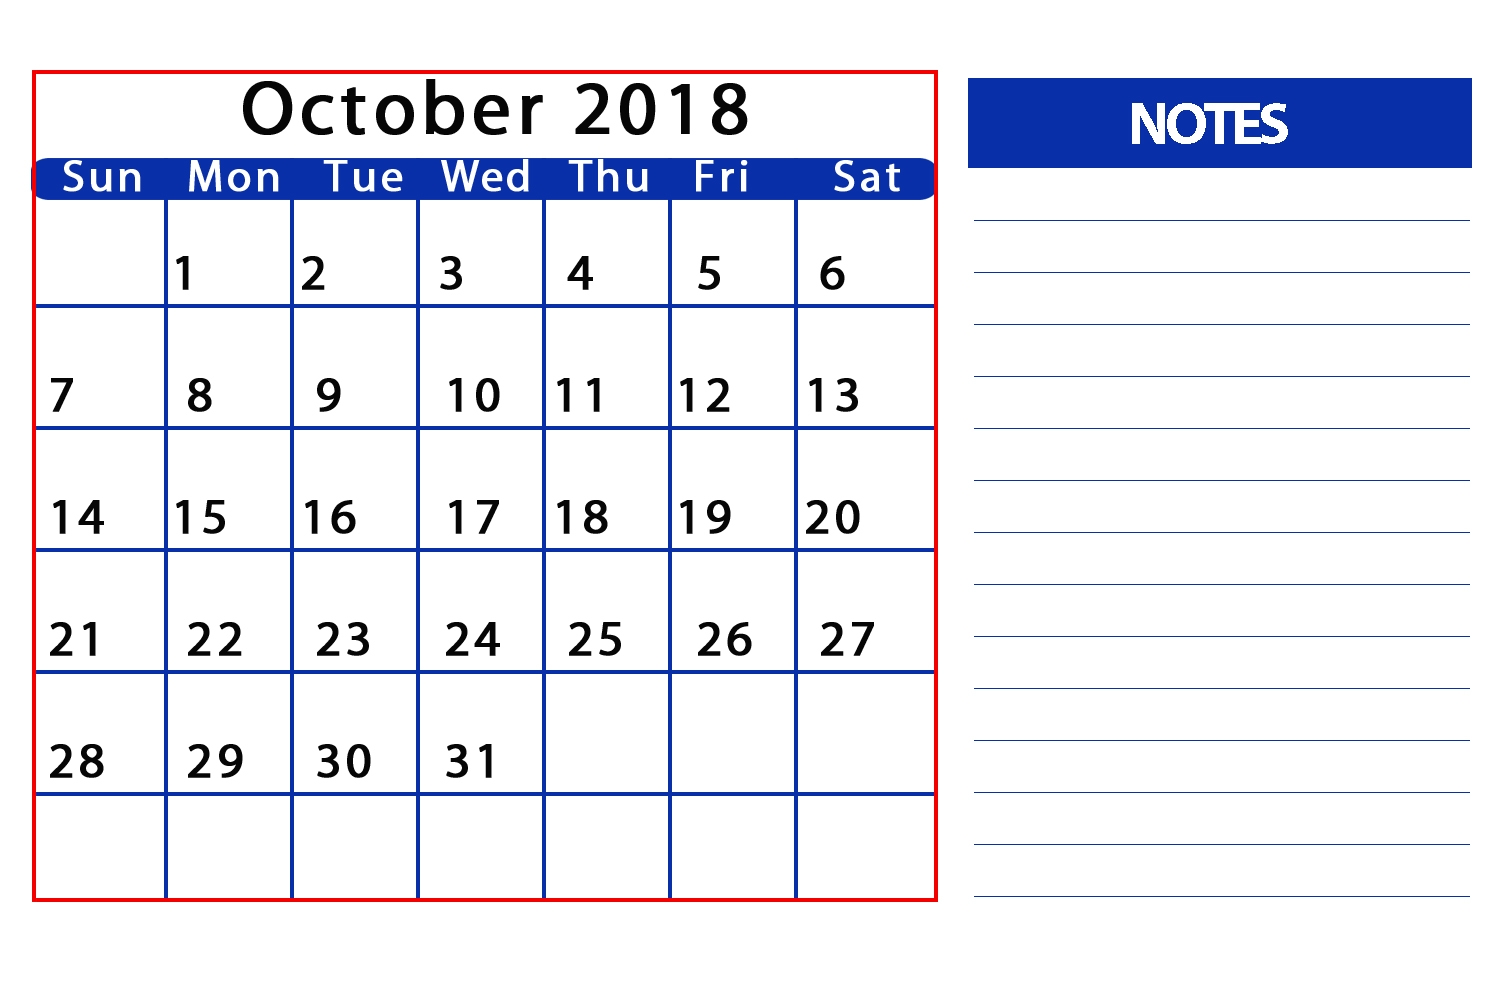 october 2018 calendar countdown printable printable calendar Calendar October 2018 Printables erdferdf